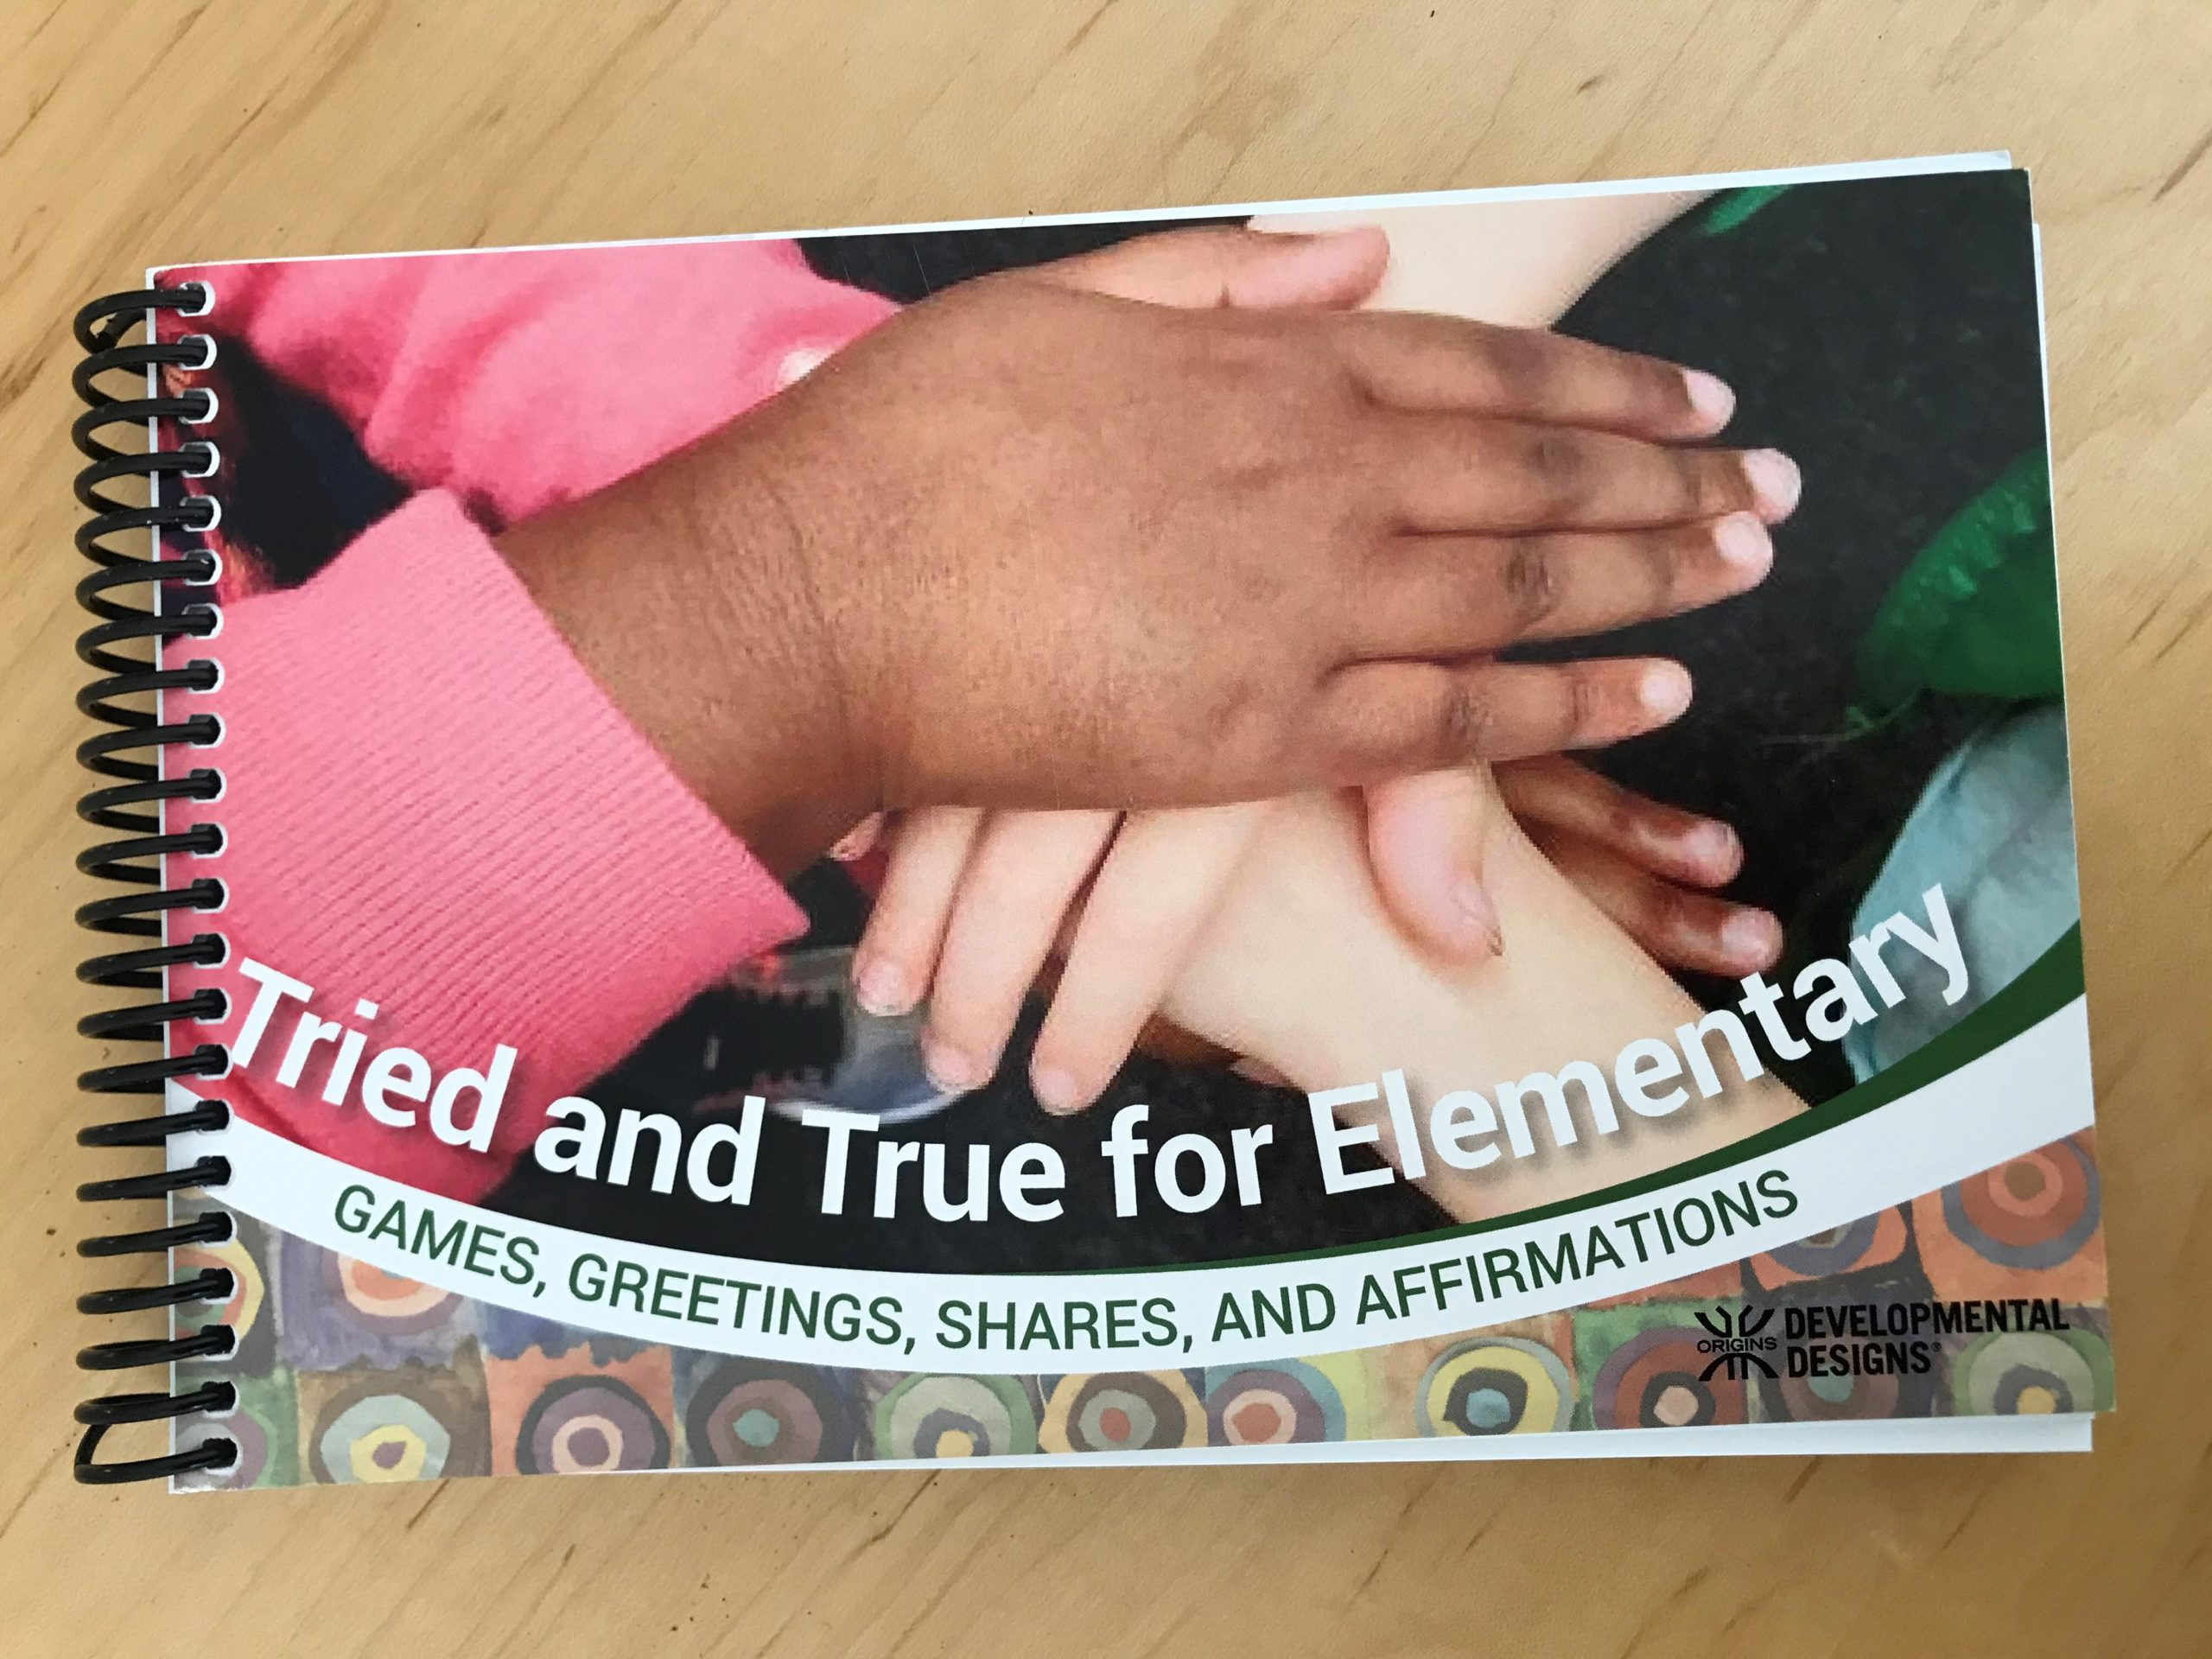 Games, Greetings, Shares, and Affirmations